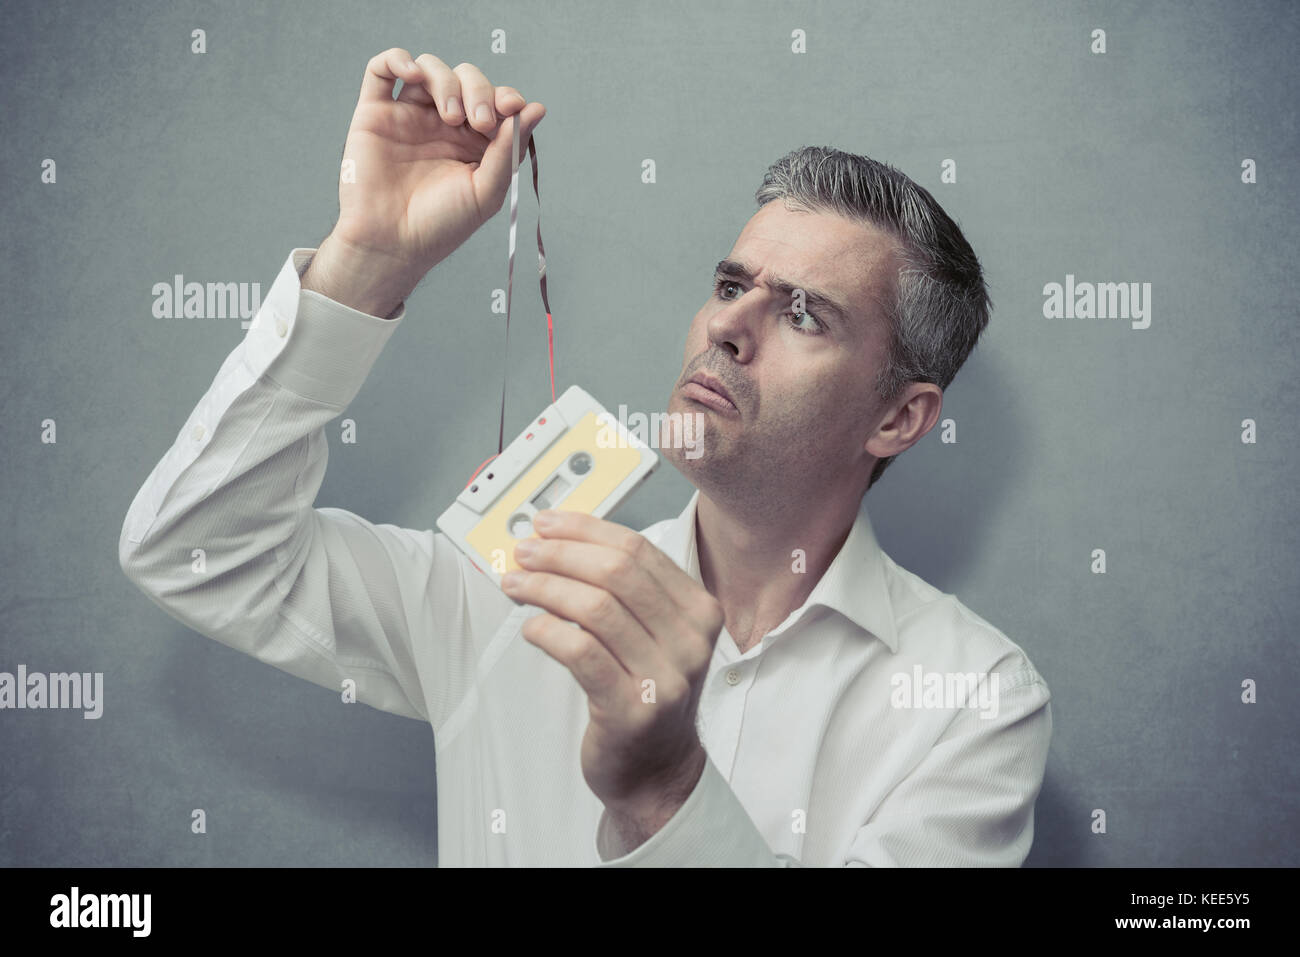 Clueless confused man holding an old audio cassette and pulling the tape, vintage outdated technology concept - Stock Image